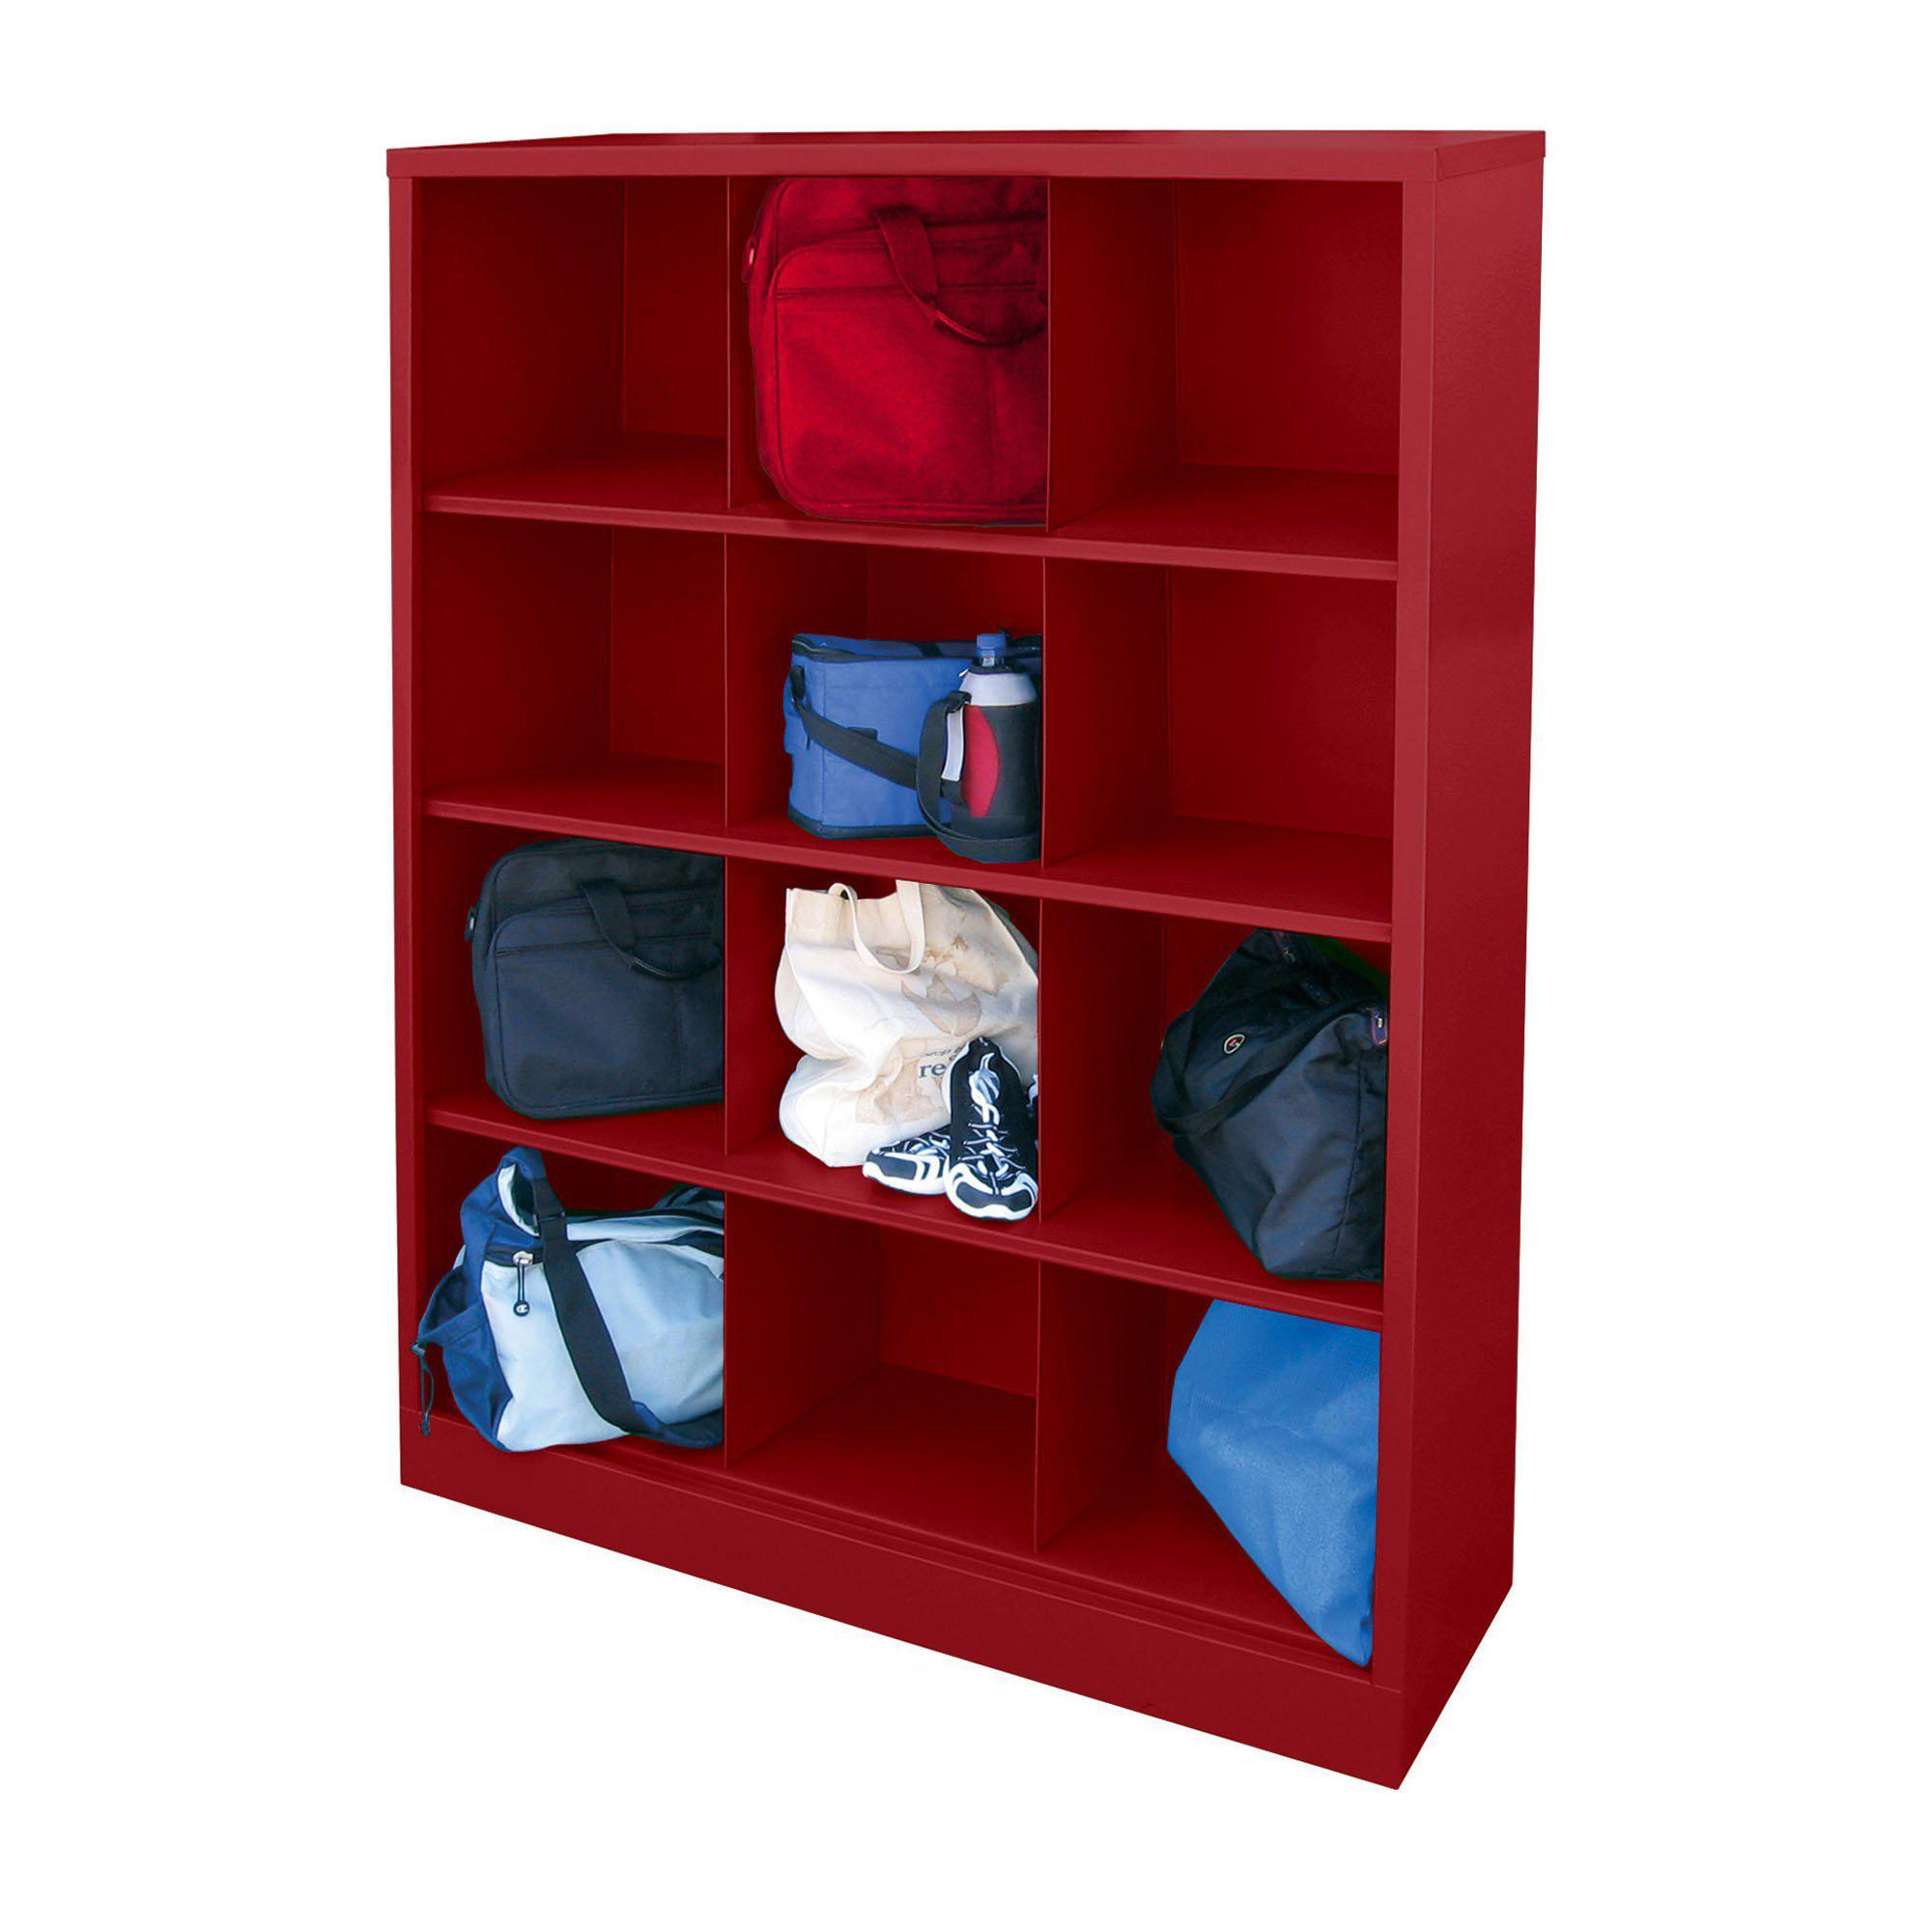 Cubby Storage Organizer, 12 Sections, 46 x 18 x 66